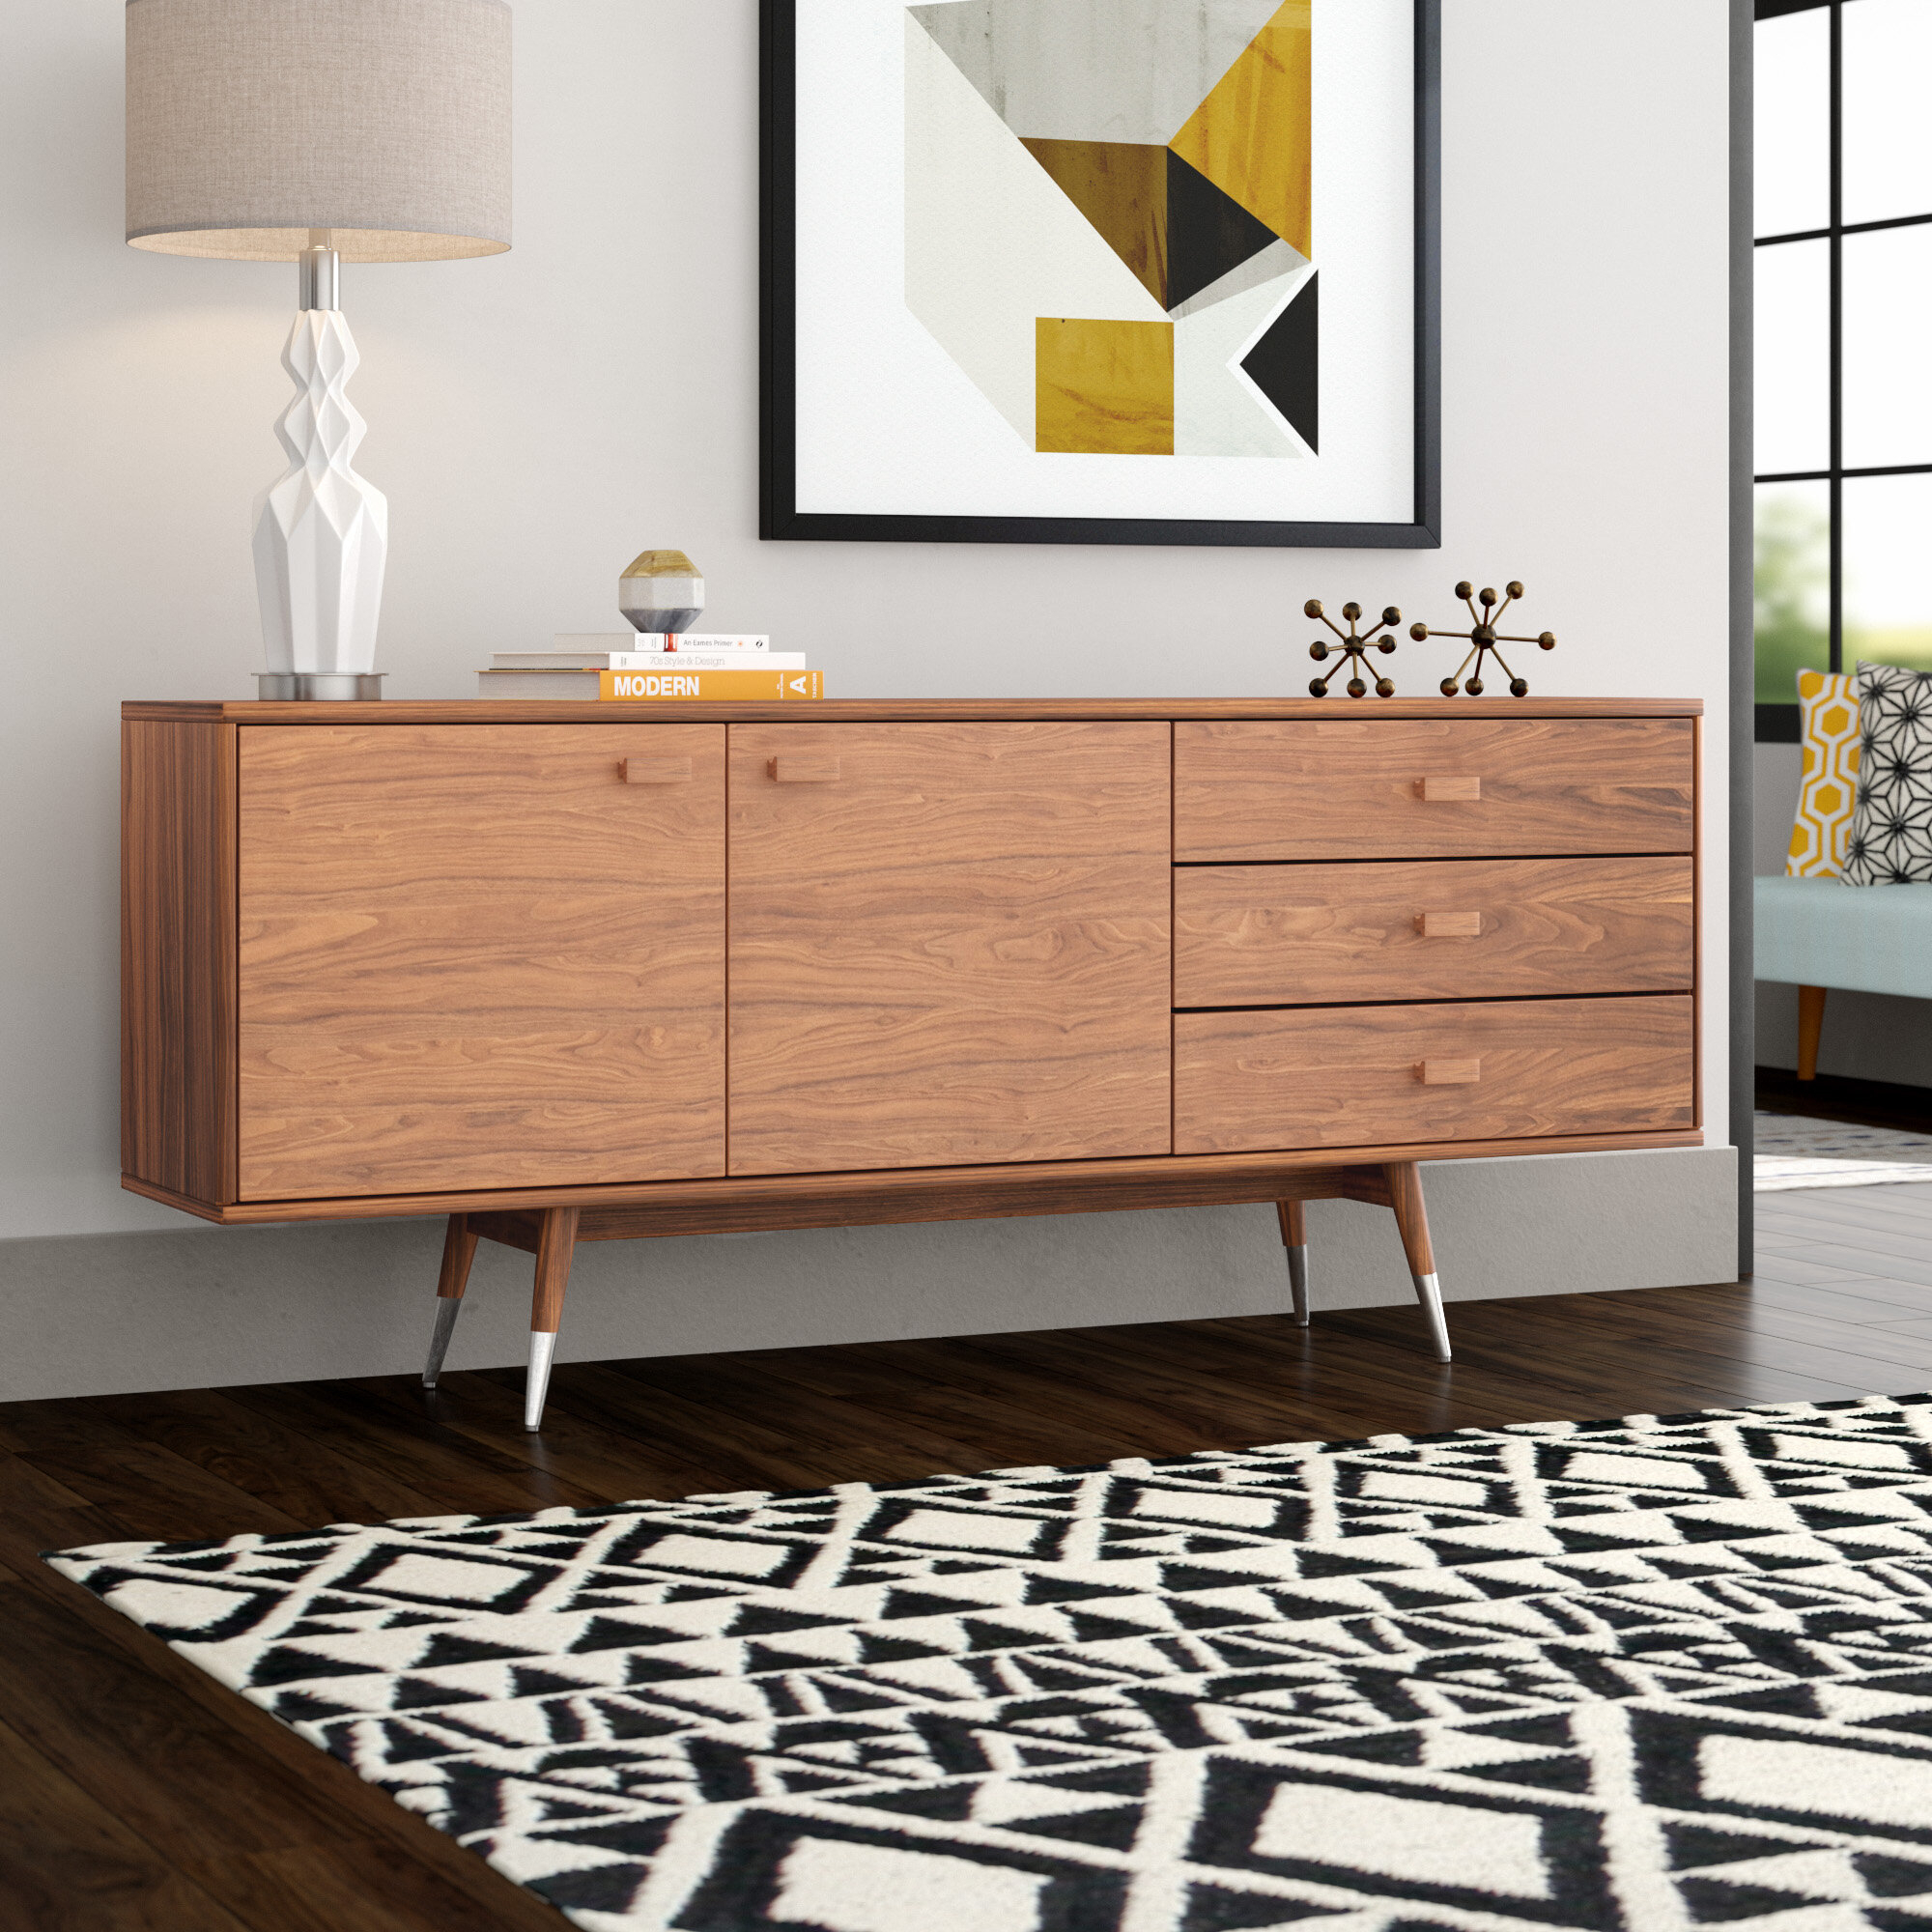 Braxton Studio Sideboard | Wayfair within Massillon Sideboards (Image 8 of 30)